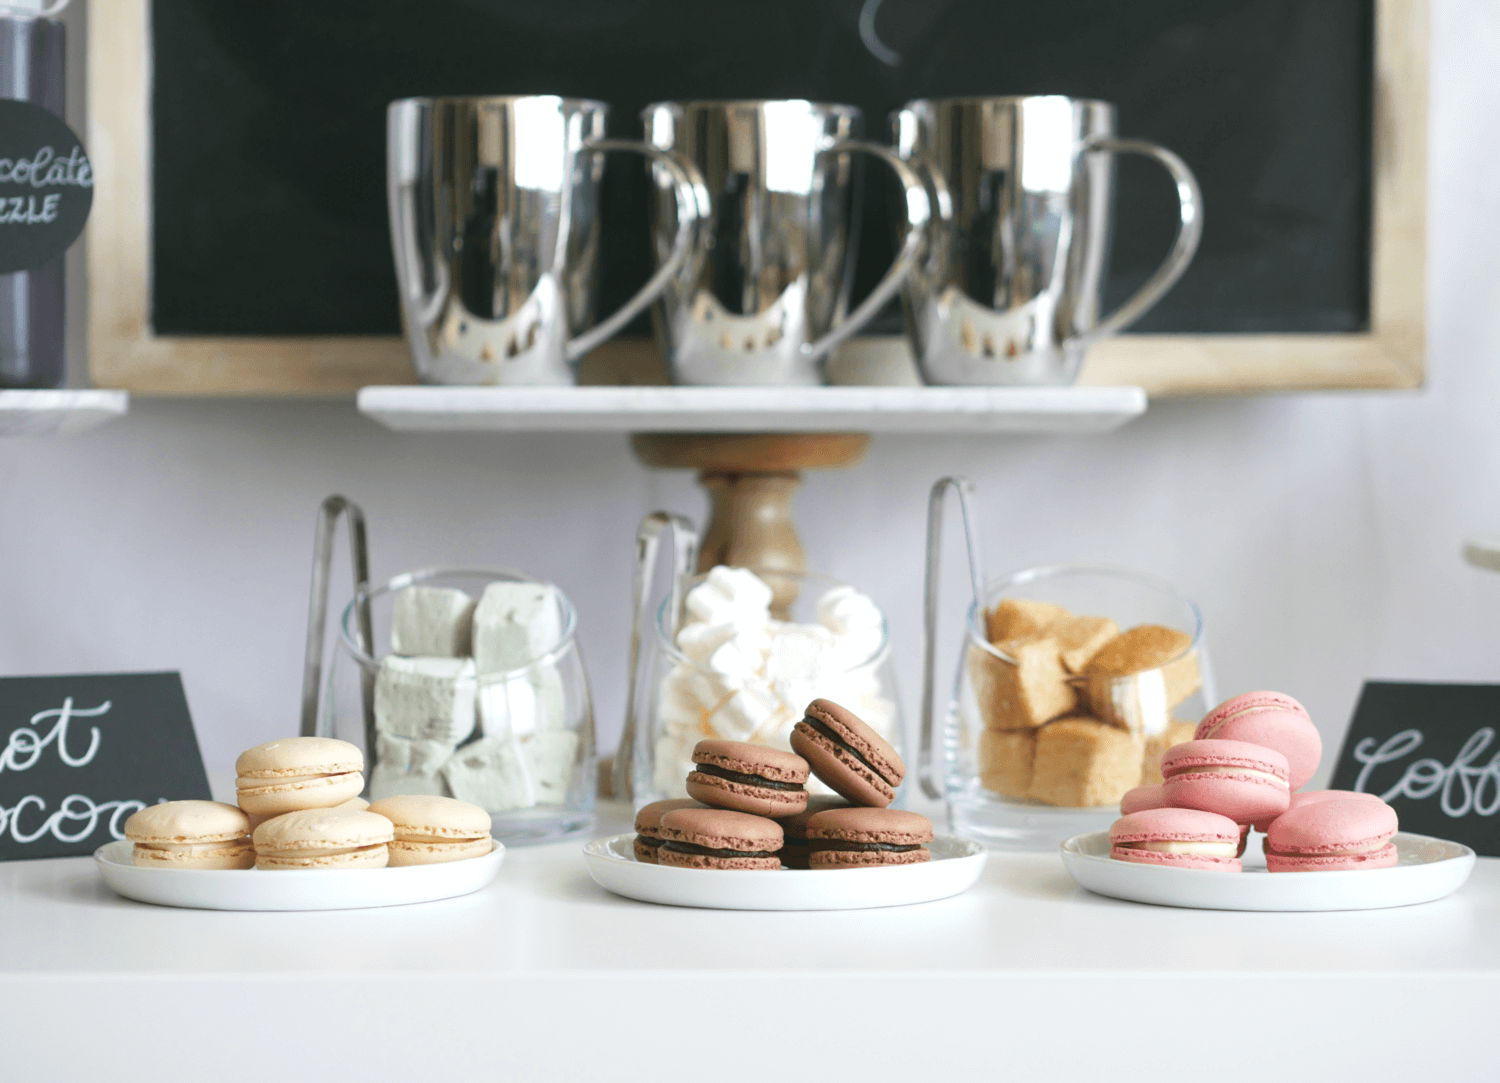 Sweet Vanilla, Chocolate and Raspberry Macarons for a Hot Cocoa and Coffee Bar Station. Click for details on this DIY Hot Cocoa and Coffee Bar. Styled by party stylist Mint Event Design. #partyideas #partyinspiration #hotchocolate #hotcocoa #coffeebar #coffeestation #winterparty #winterwedding #macarons